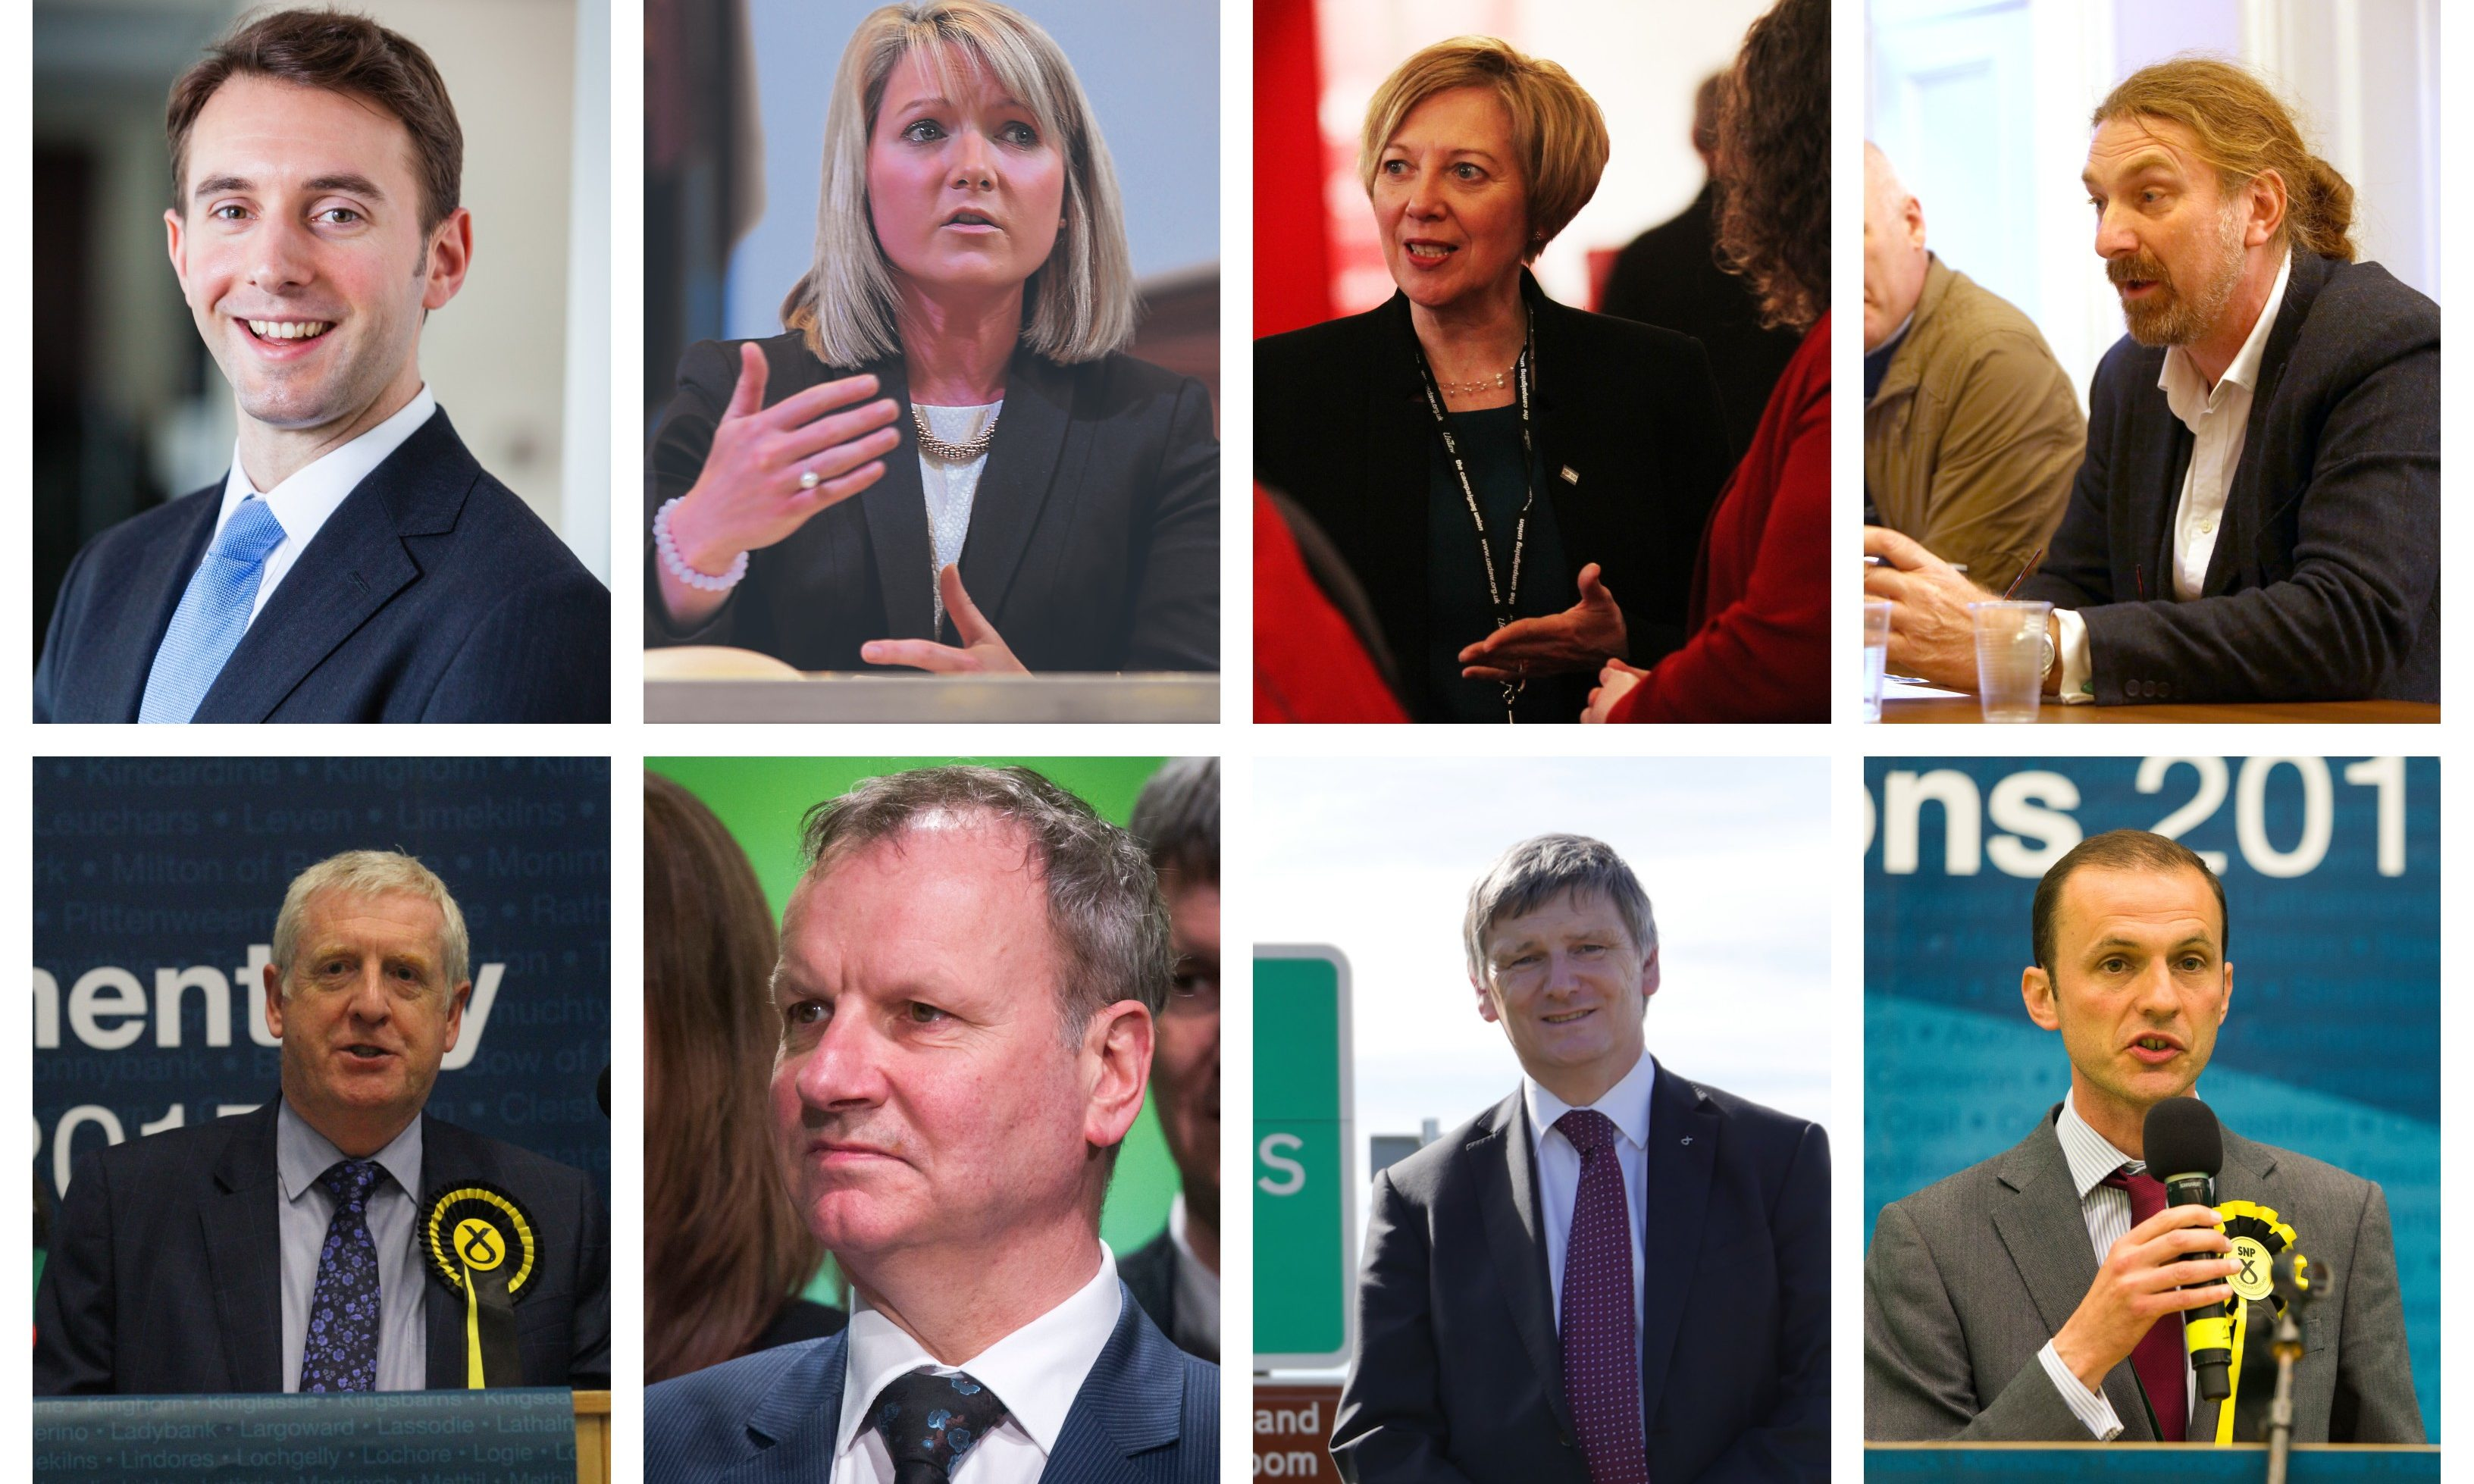 Local MPs: Top row L-R) - Luke Graham, Kirstene Hair, Lesley Laird and Chris Law. Bottom row L-R) - Stewart Hosie, Douglas Chapman, Peter Wishart, Peter Grant and Stephen Gethins.